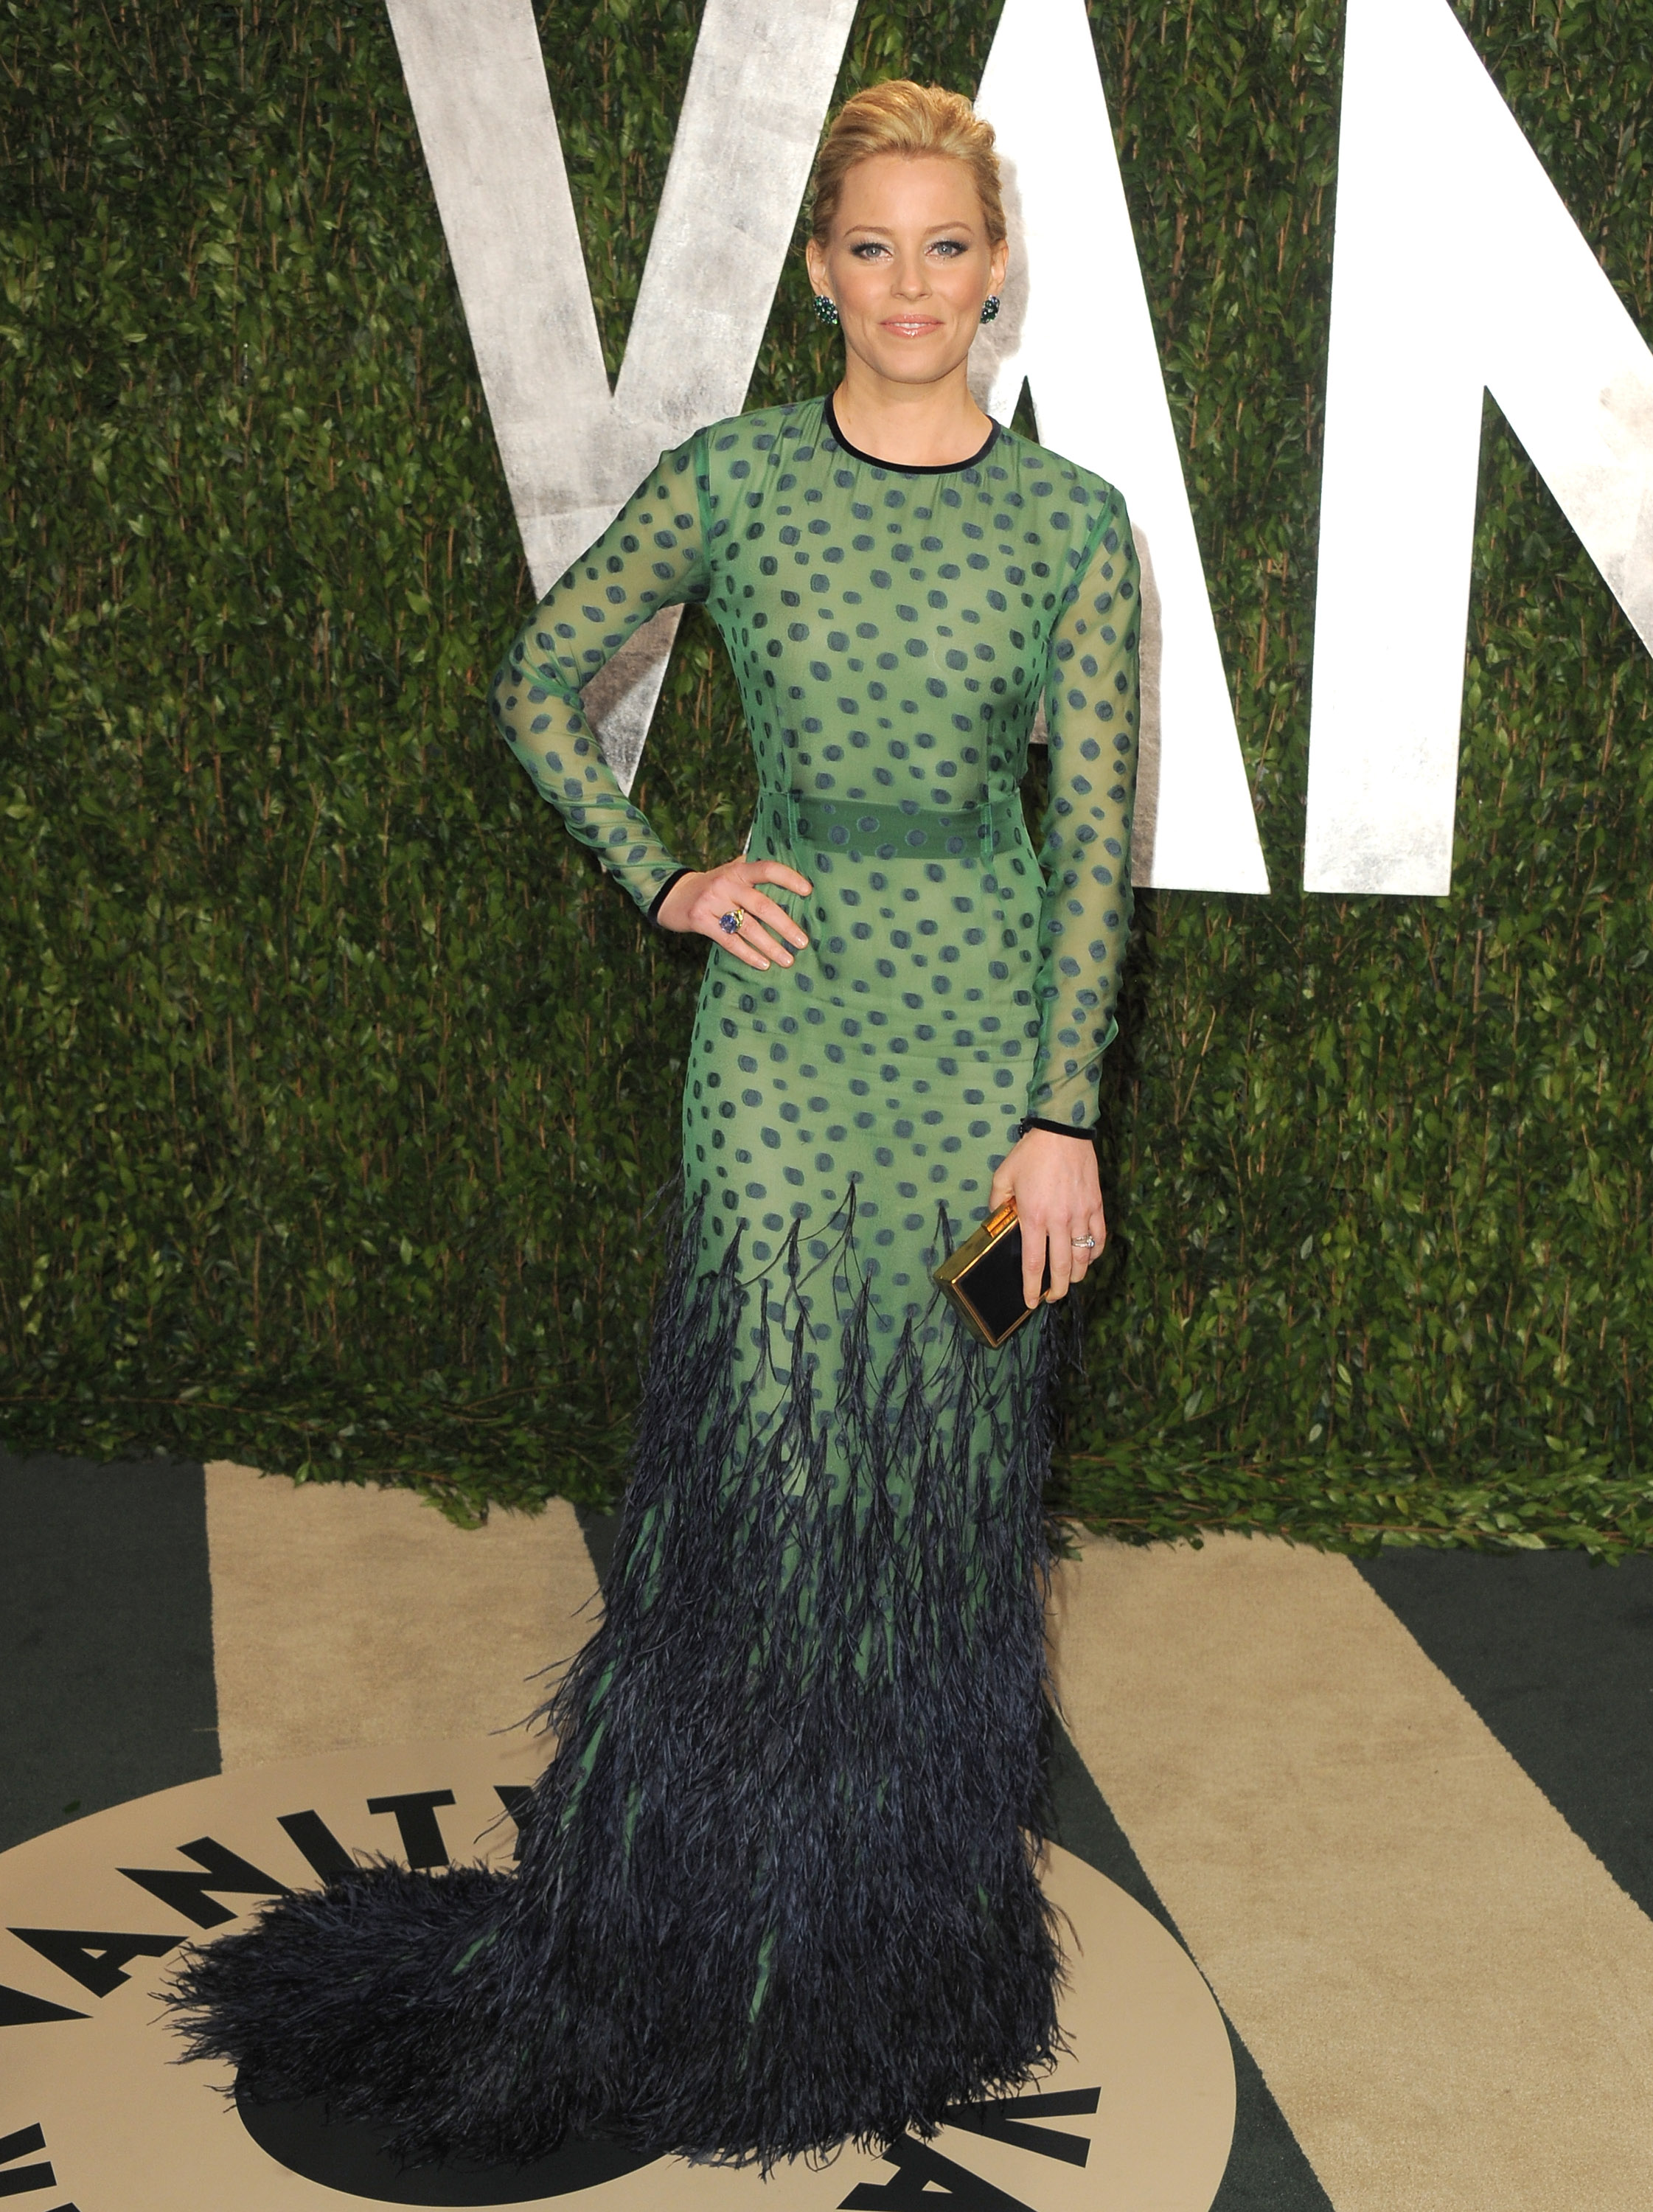 Banks in an elegant peacock-inspired Chadwick Bell frock.